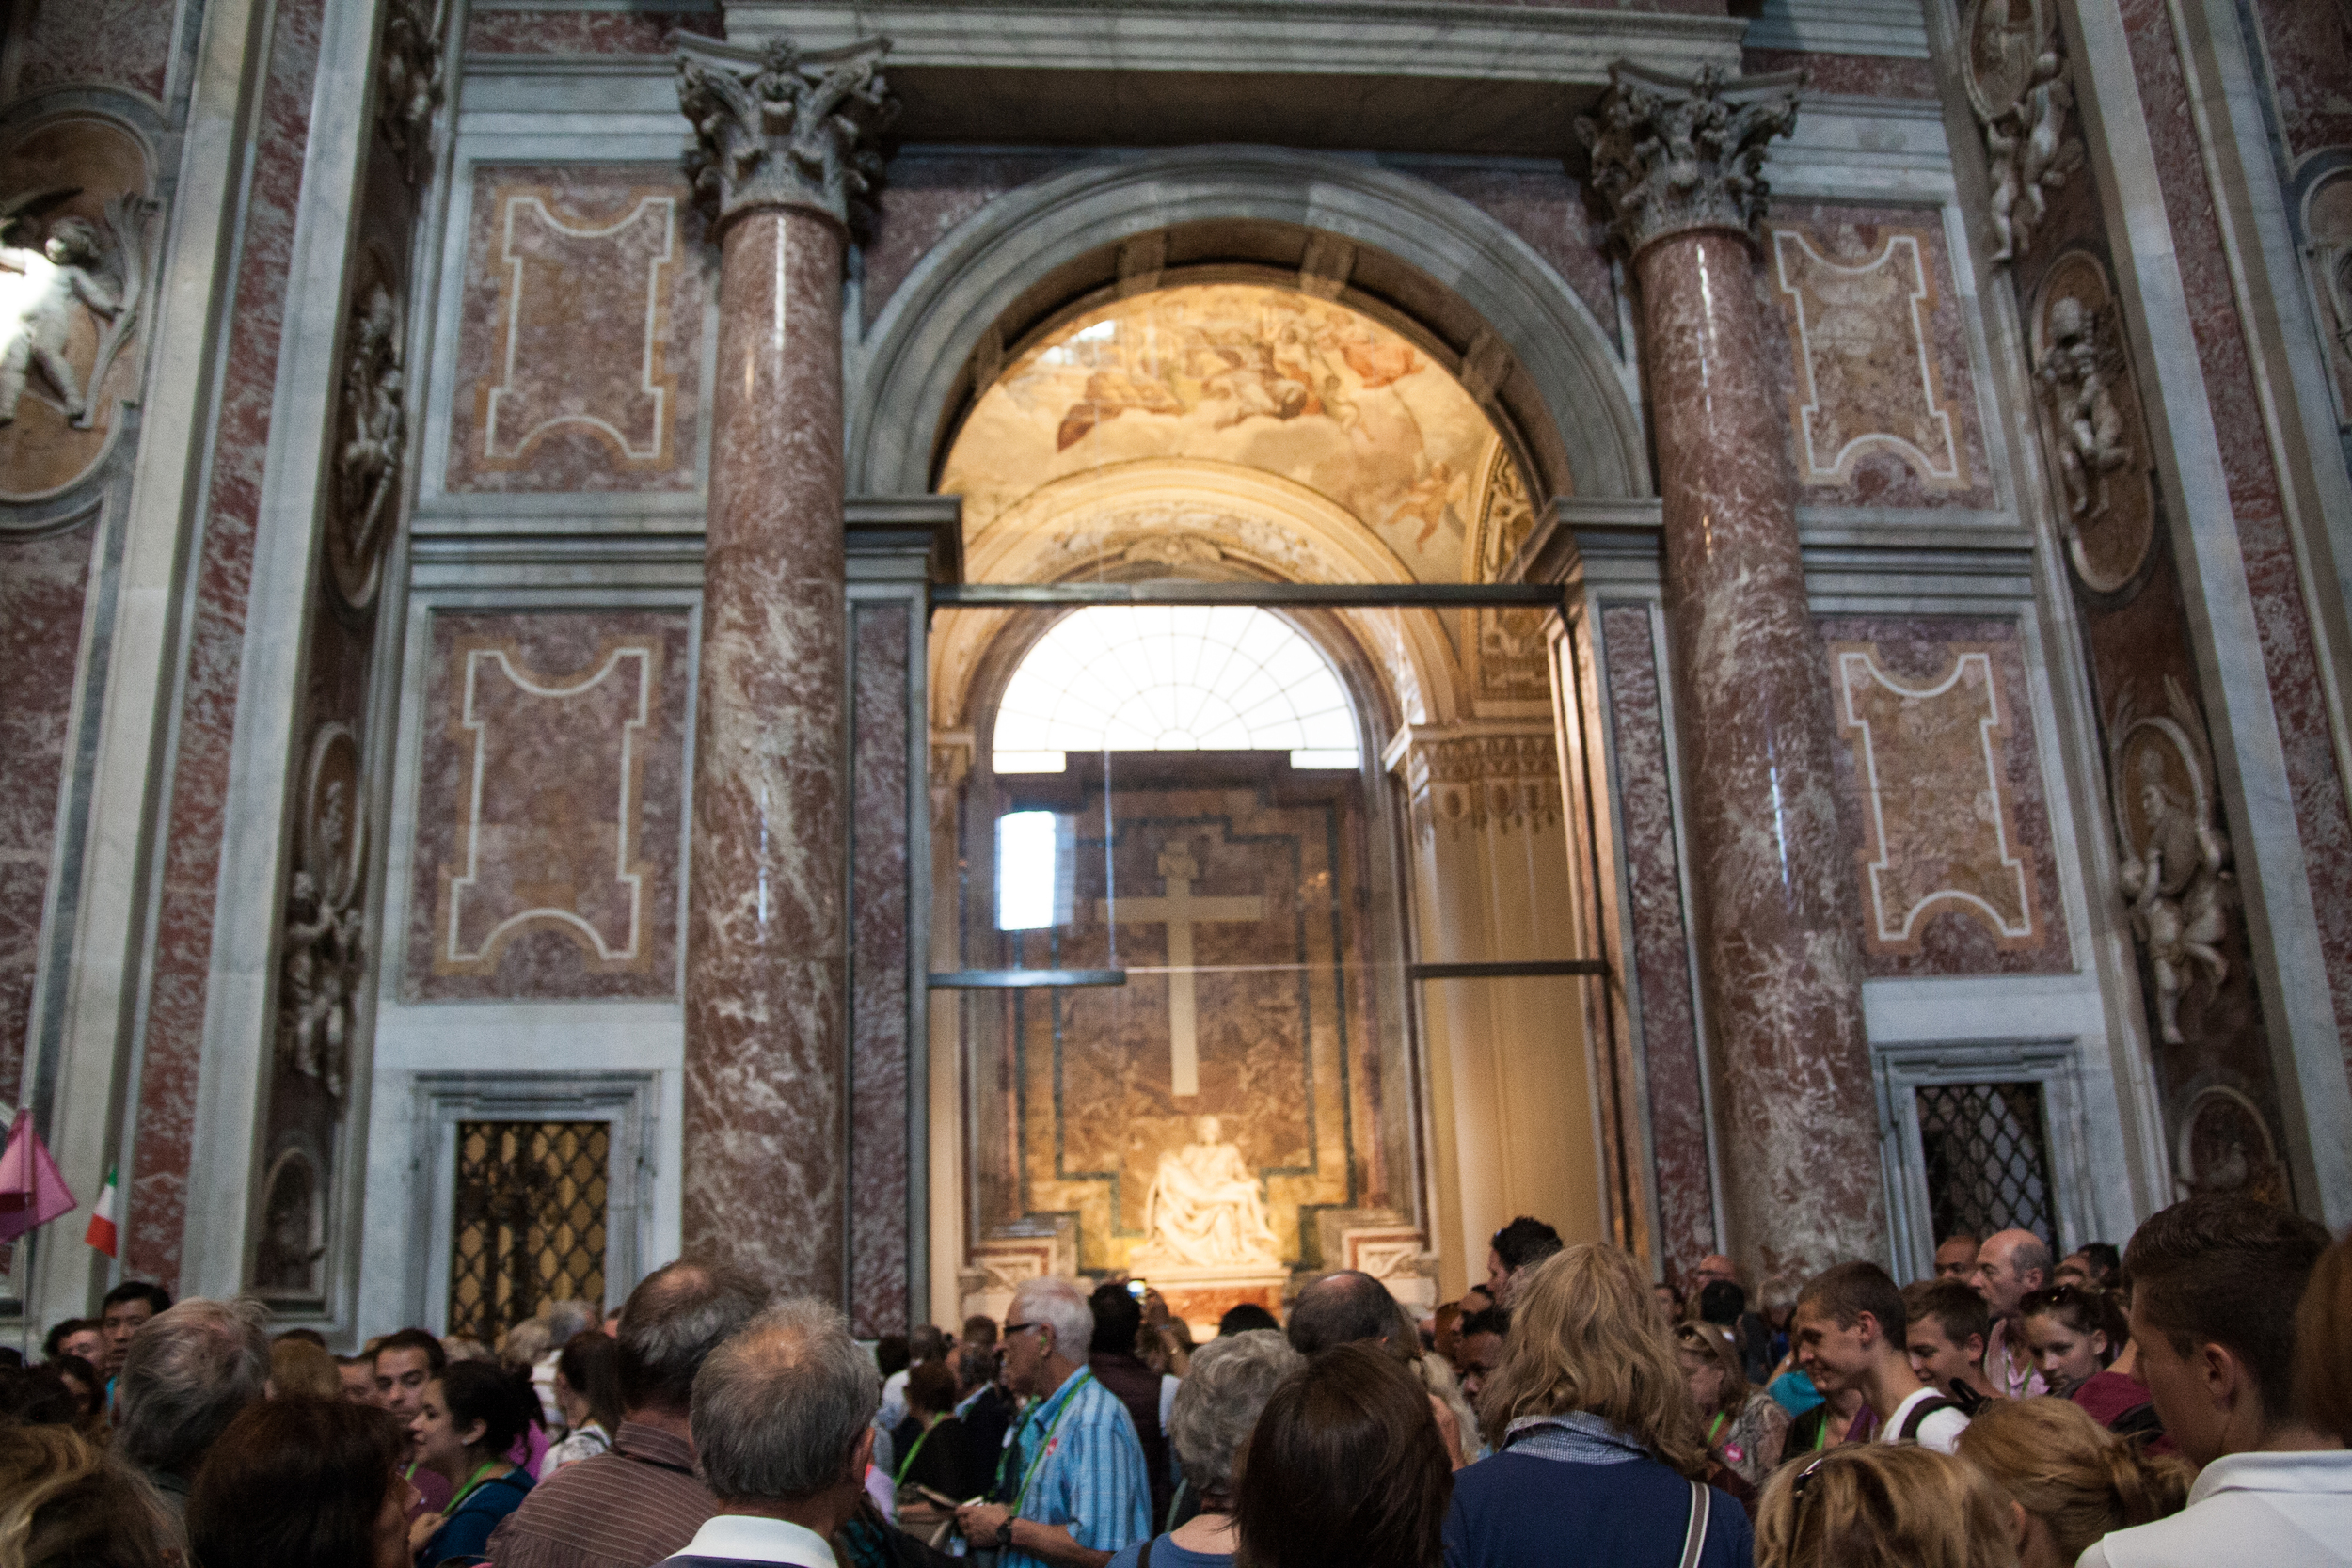 The Pietà  (Michelangelo) in St. Peter's Basilica sits behind bulletproof glass